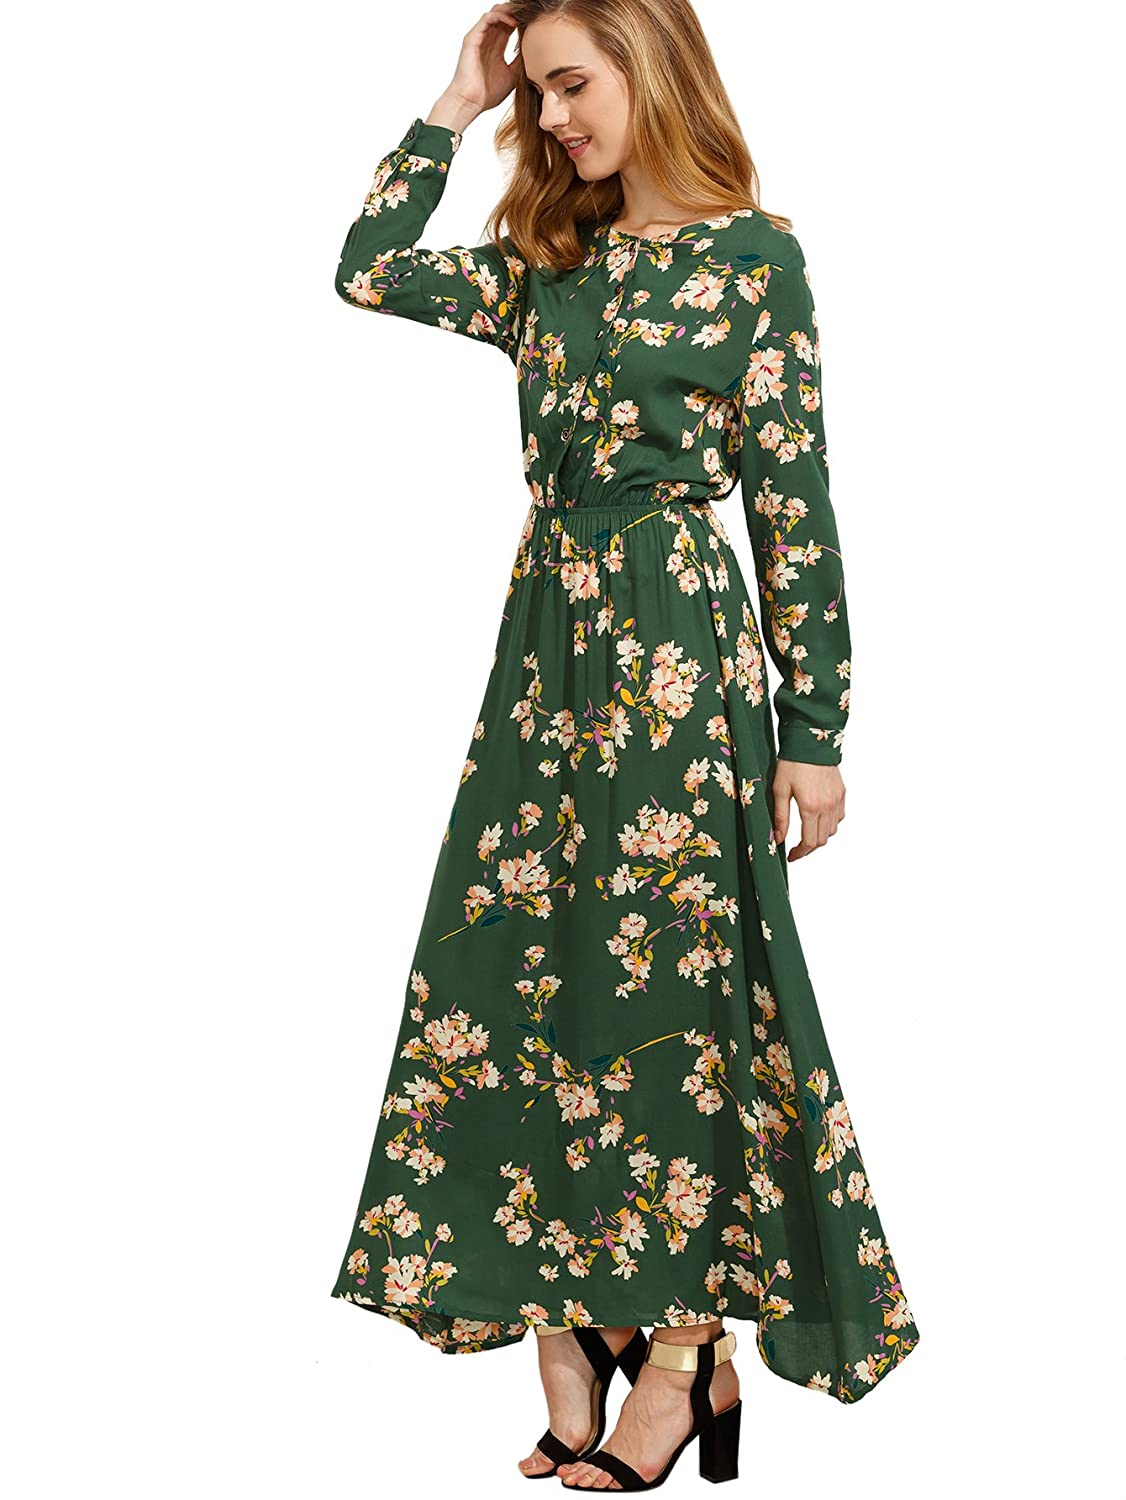 1930s Plus Size Dresses Floerns Womens Long Sleeve Floral Print Button Casual Maxi Dress $39.99 AT vintagedancer.com